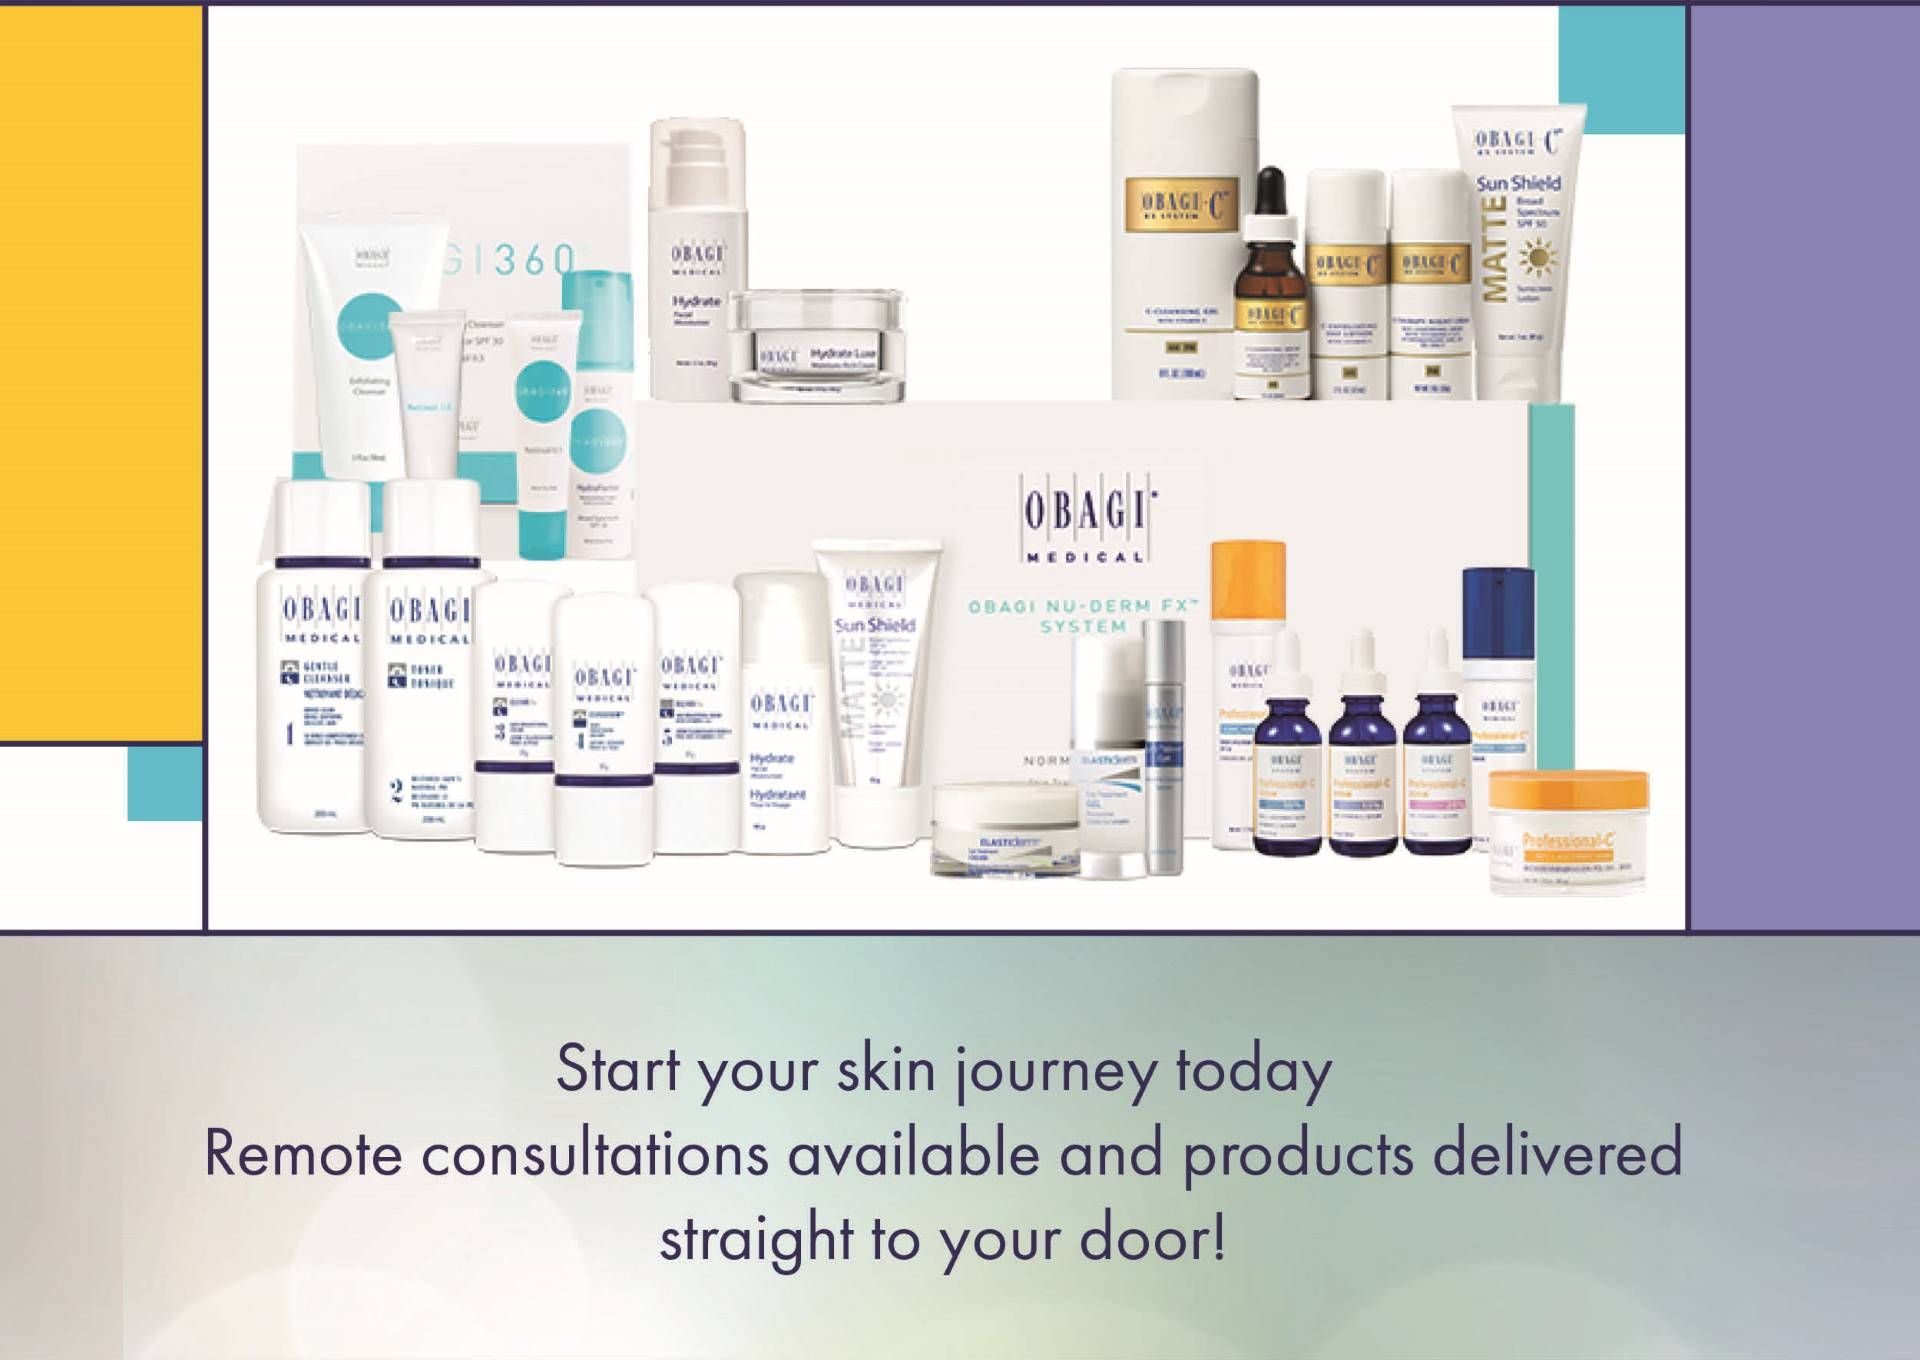 Obagi Online Consultations and Product Delivery